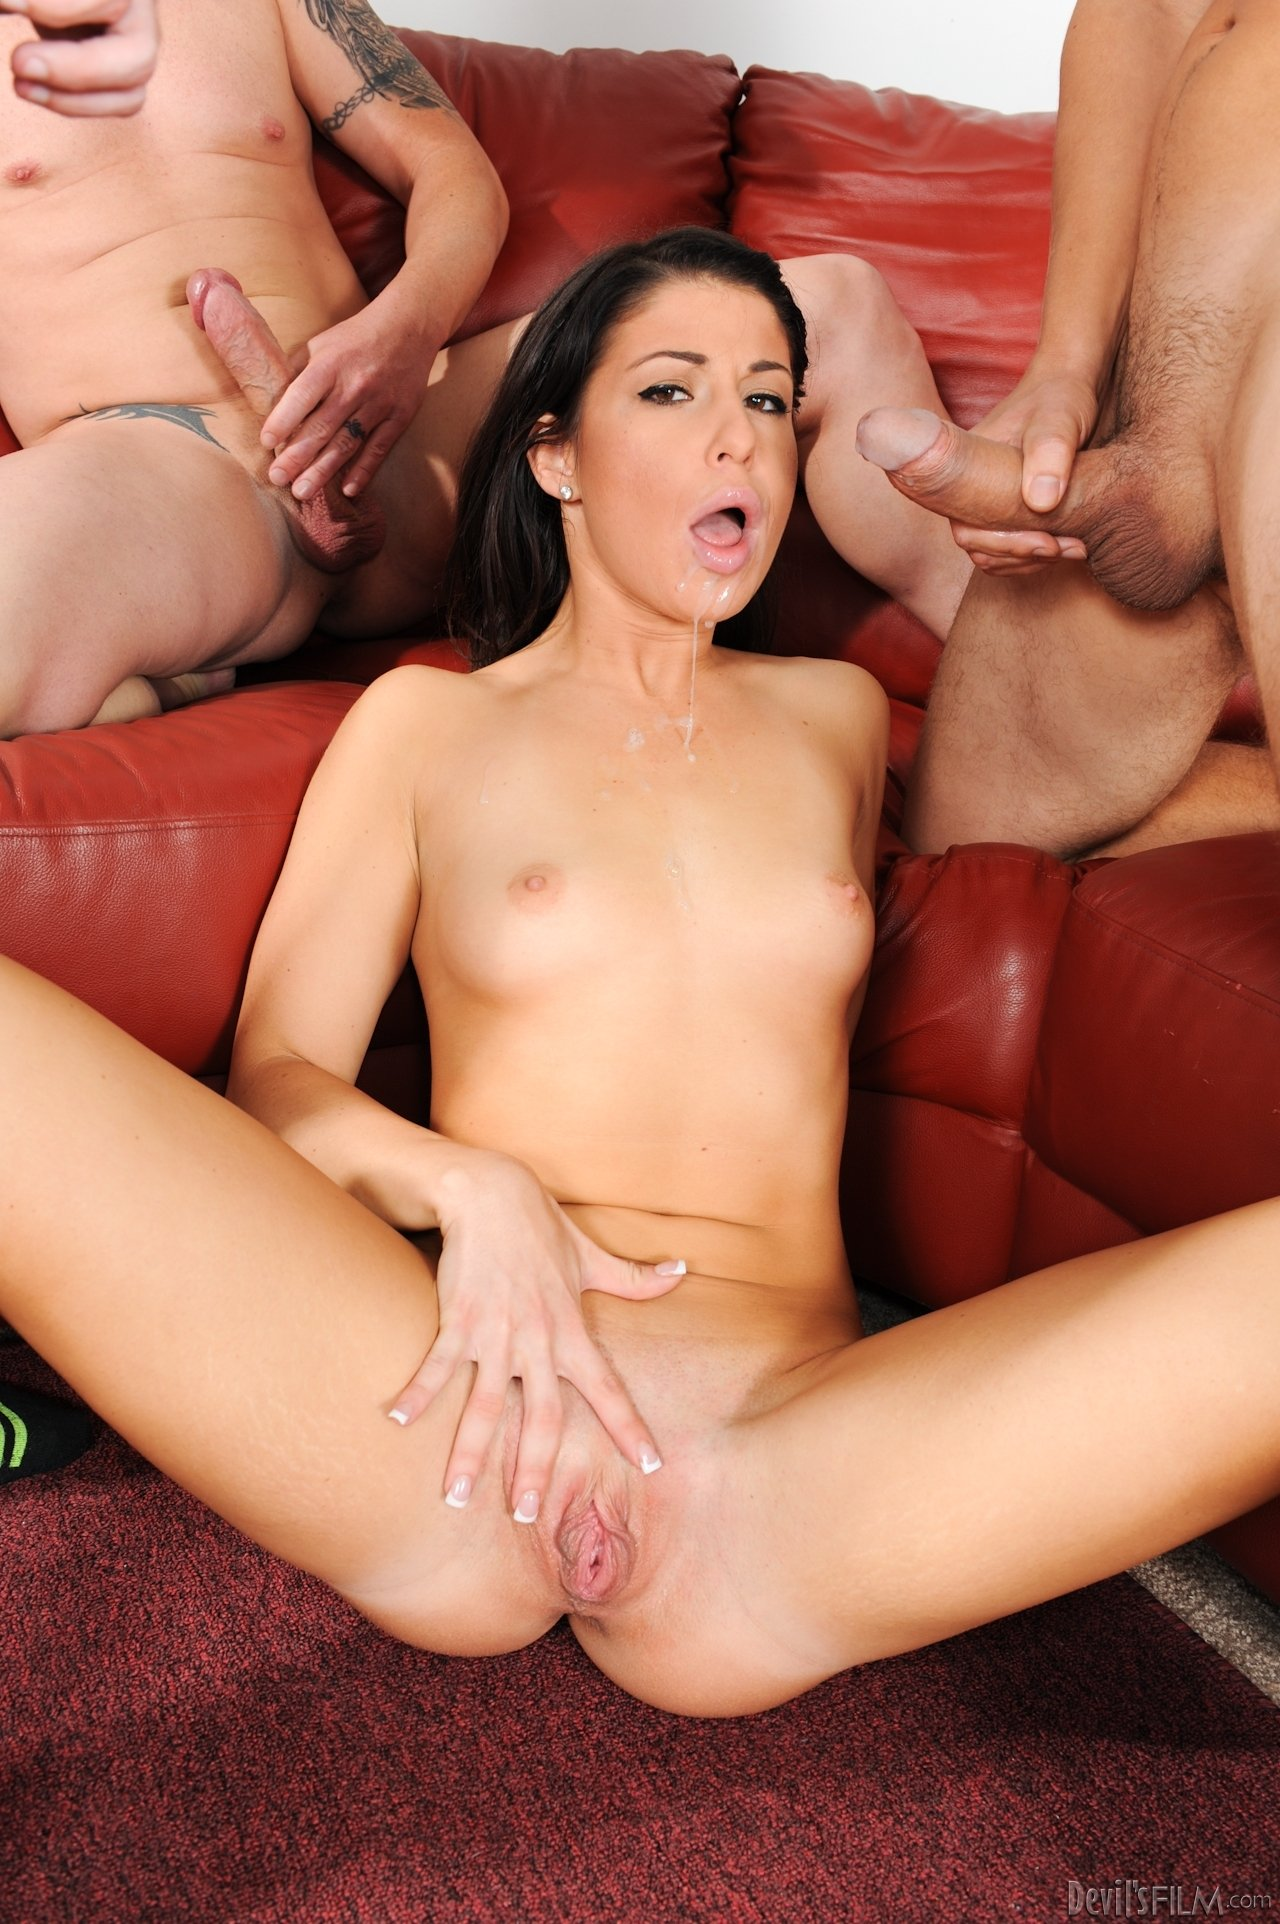 Rial wife story sex vides very hard